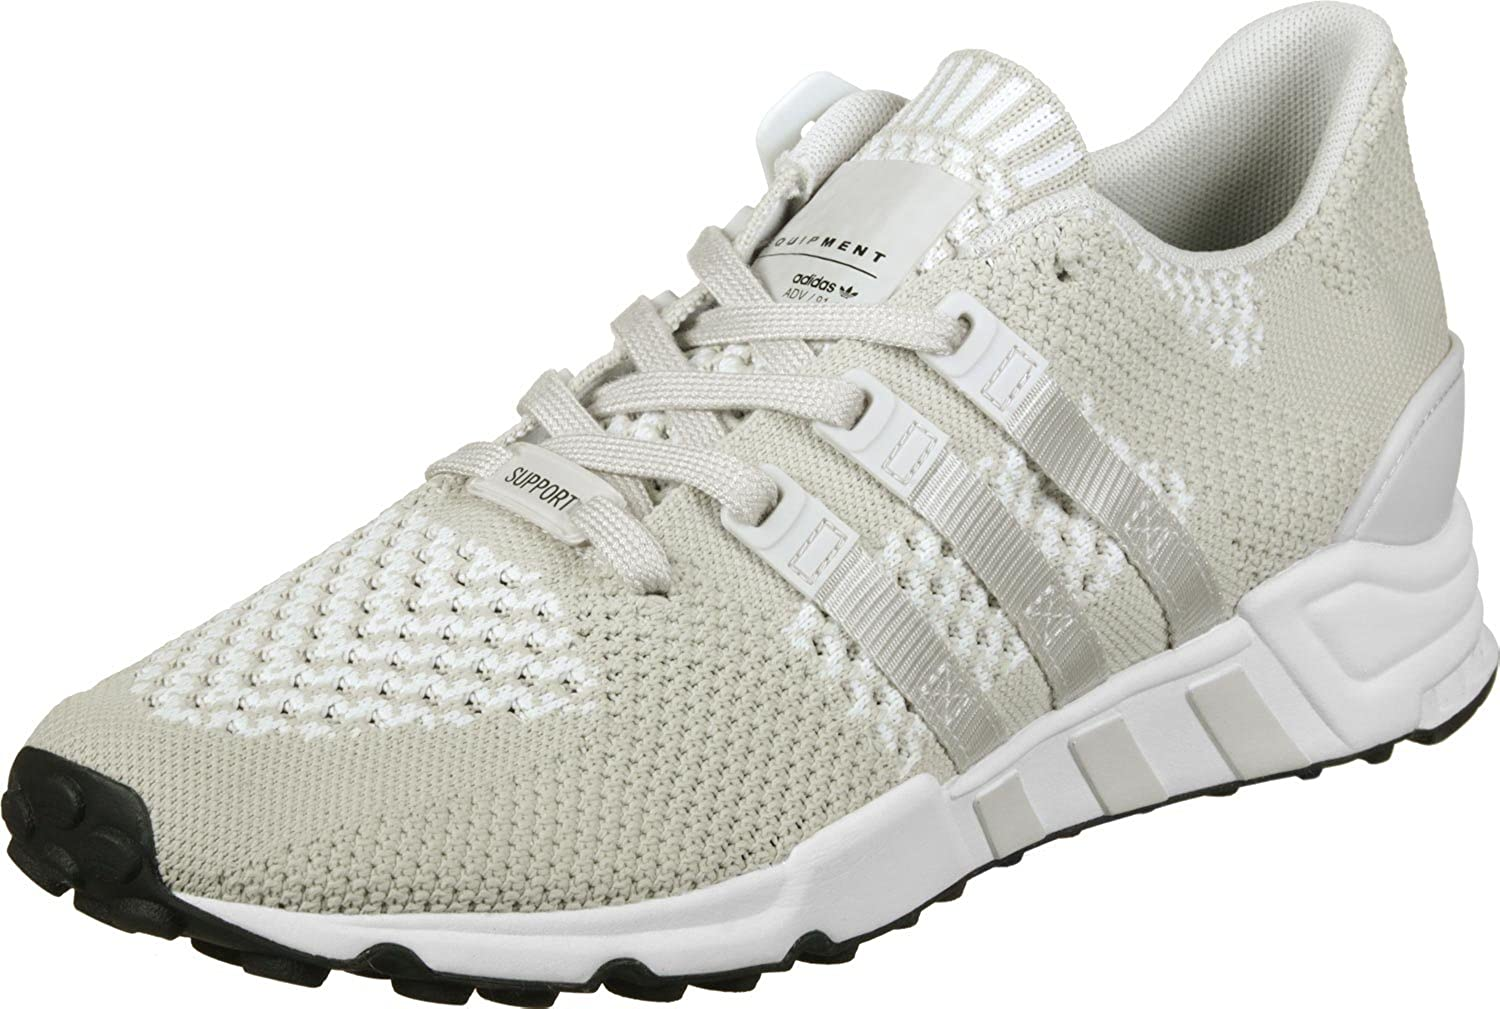 purchase cheap da7a1 9274e adidas Mens EQT Support Rf Pk Fitness Shoes Pink Amazon.co.uk Shoes   Bags